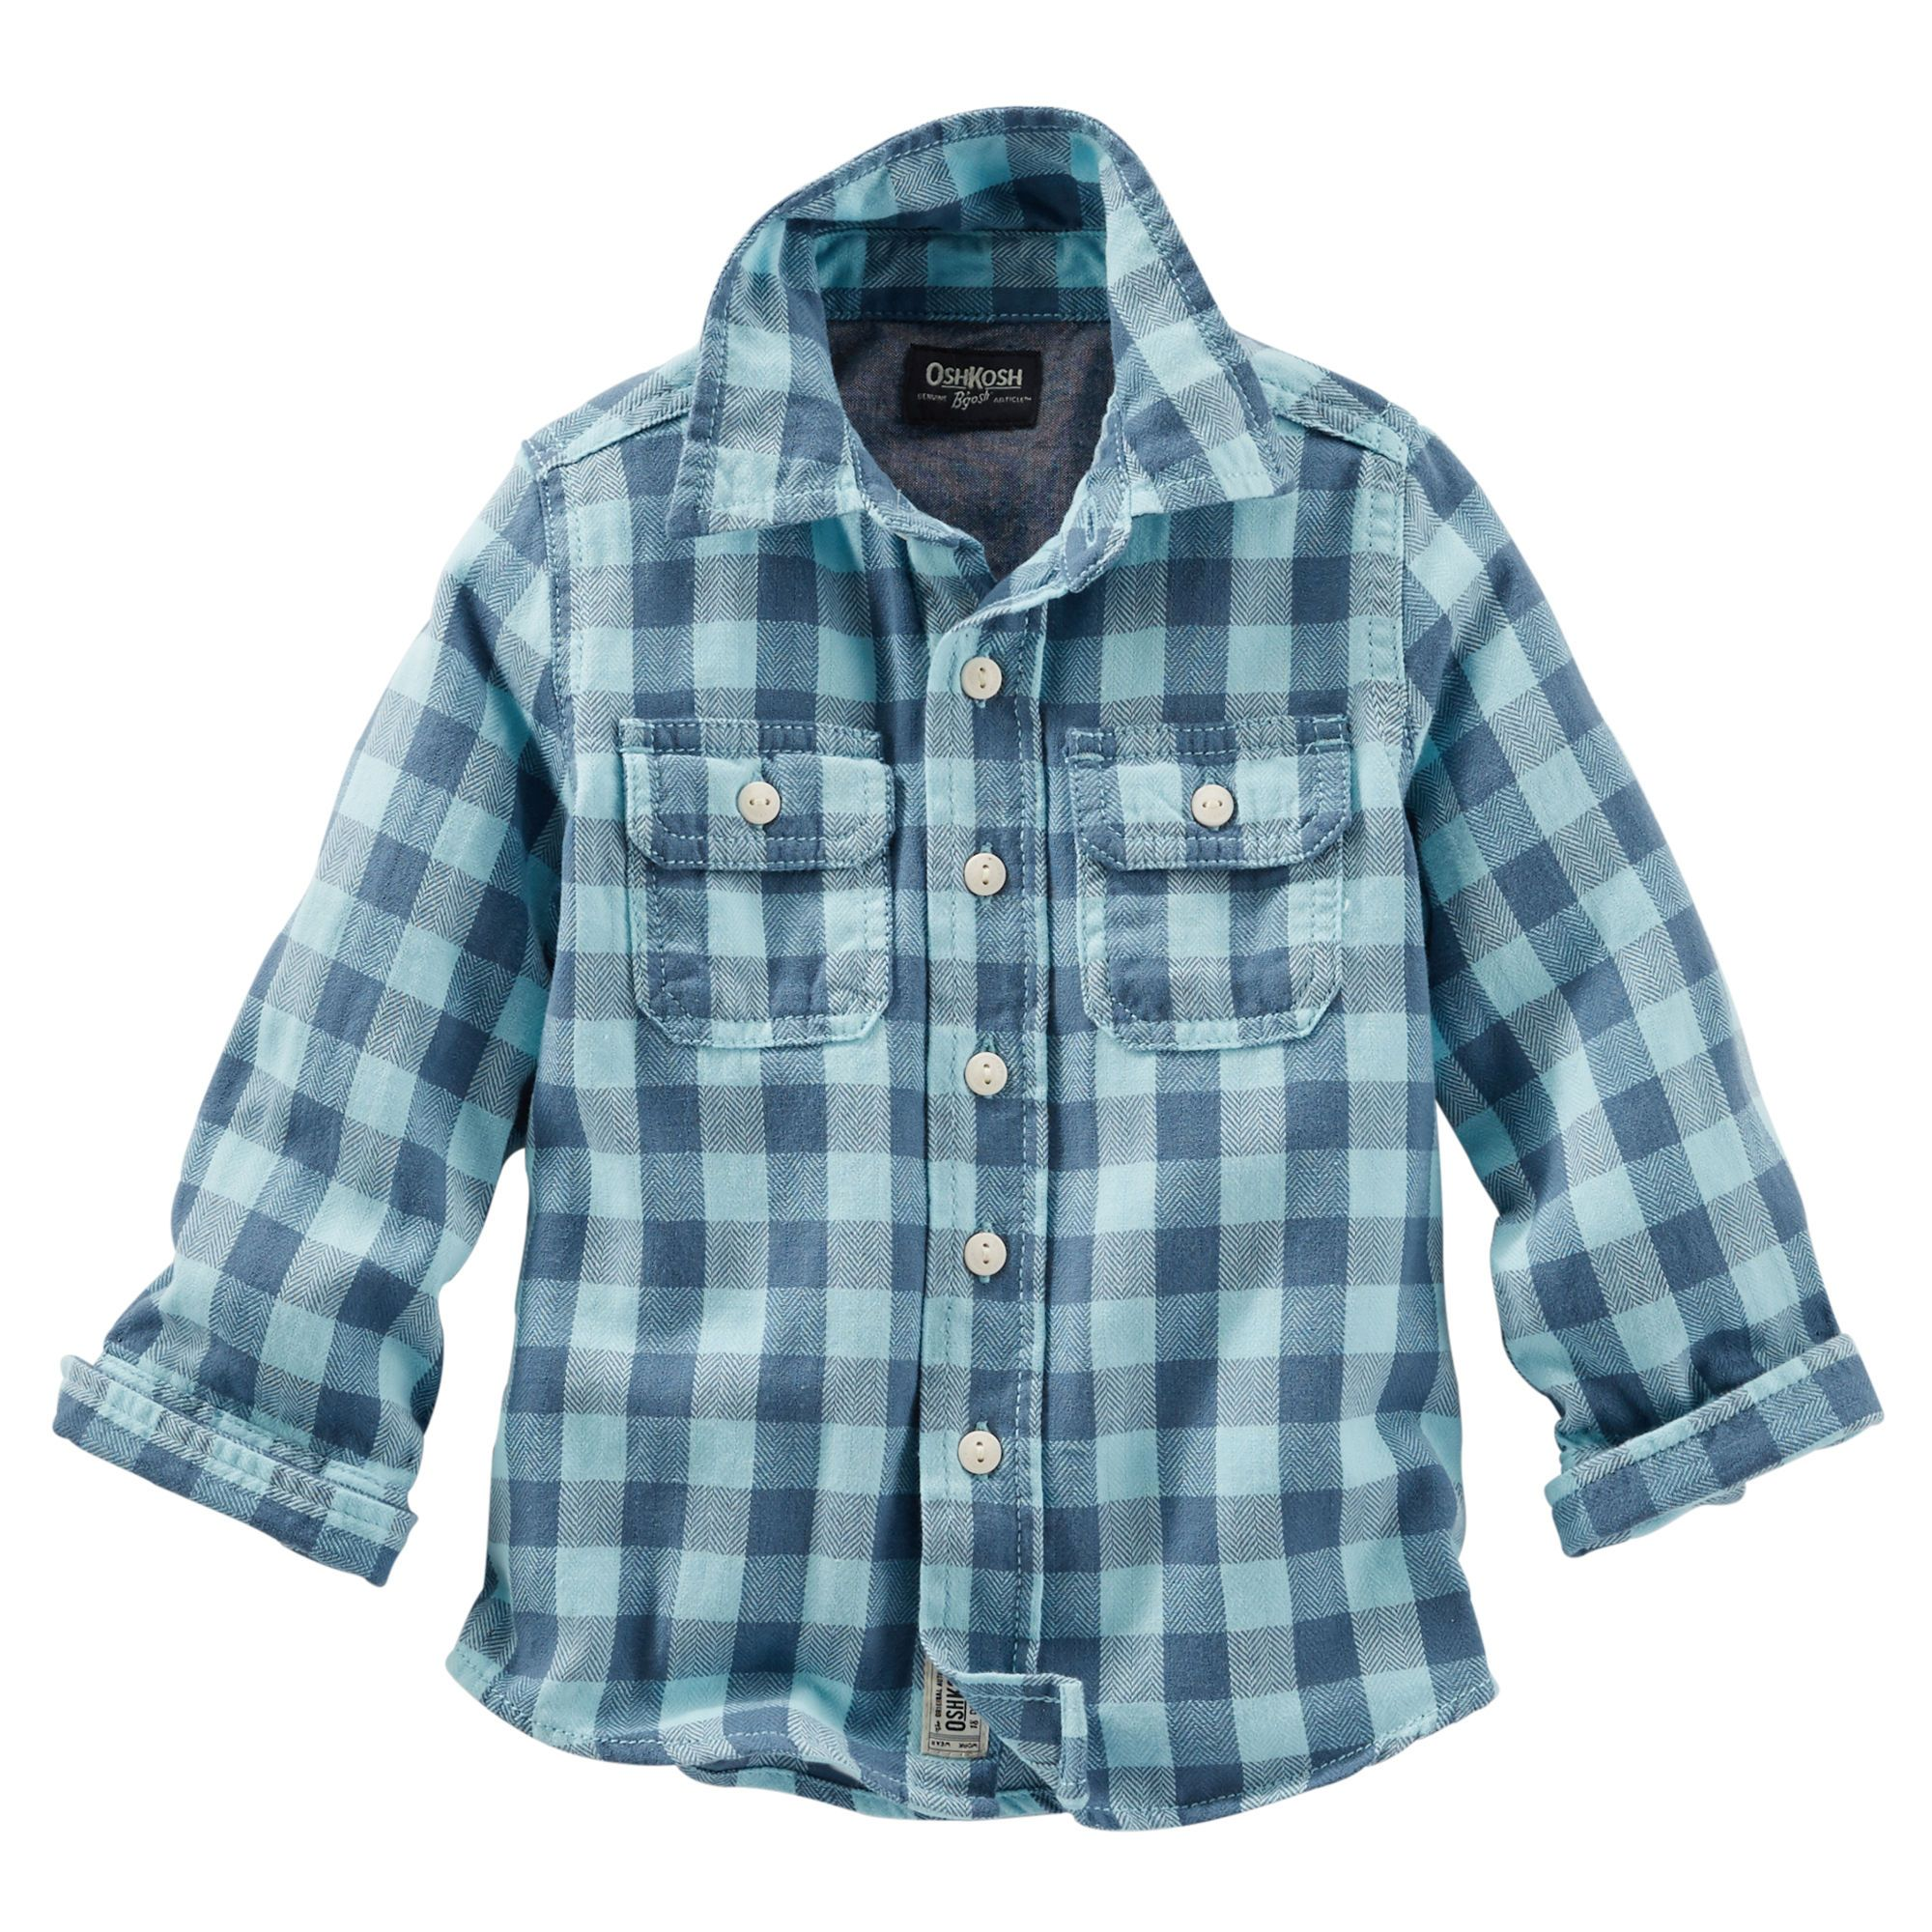 Blue flannel outfits for guys  Pocket Herringbone Shirt  Herringbone shirt Toddler boys and